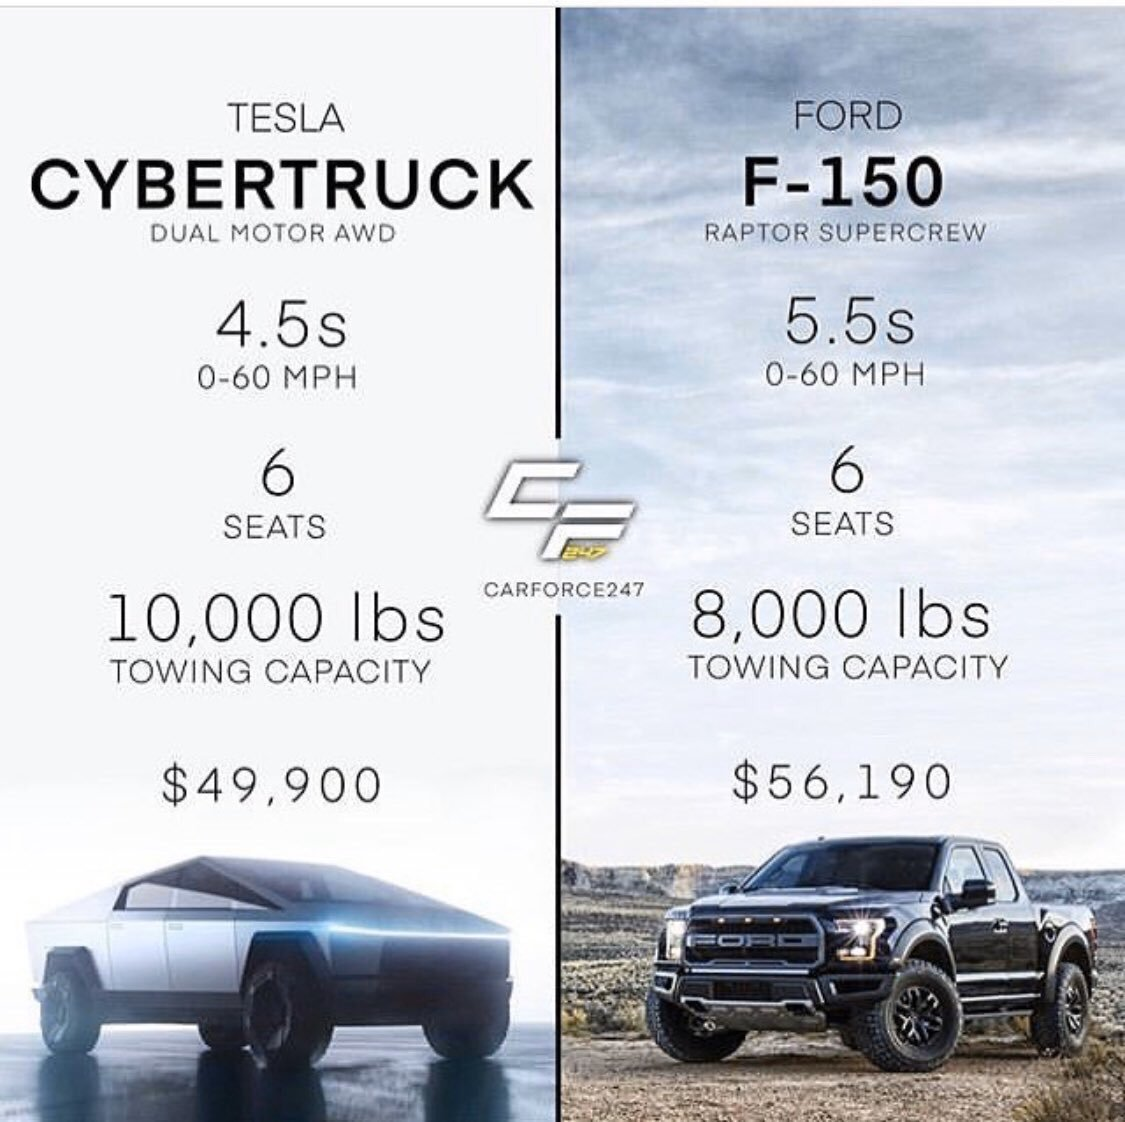 Tesla Cybertruck Dual-Motor AWD vs. Ford F-150 Raptor Supercrew specs and price comparison.